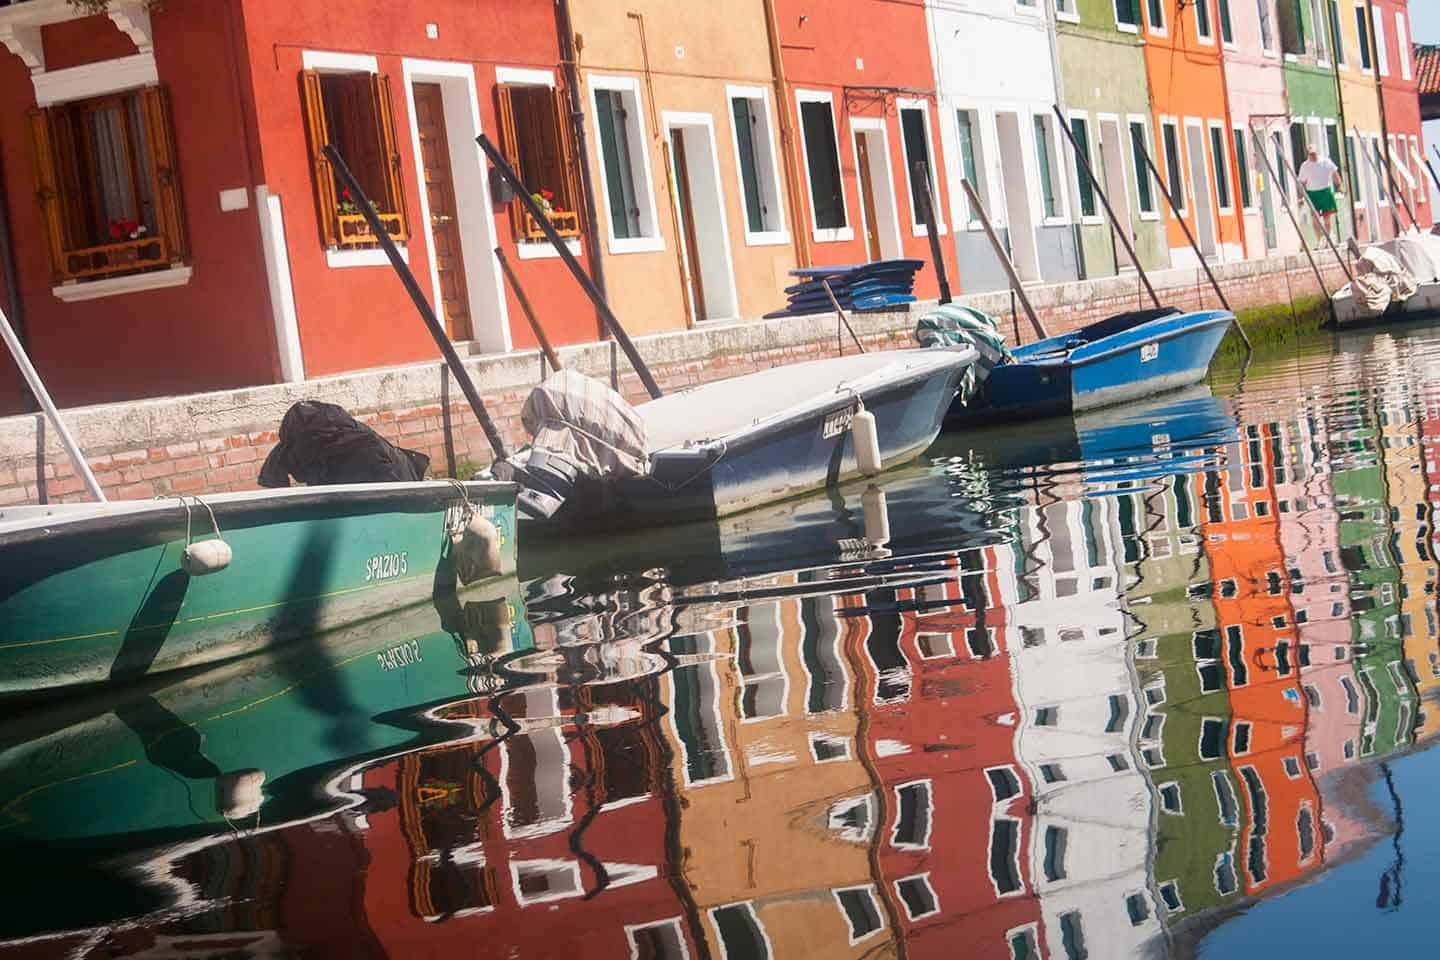 Image of a row of houses reflected in a canal in Burano Venice Italy